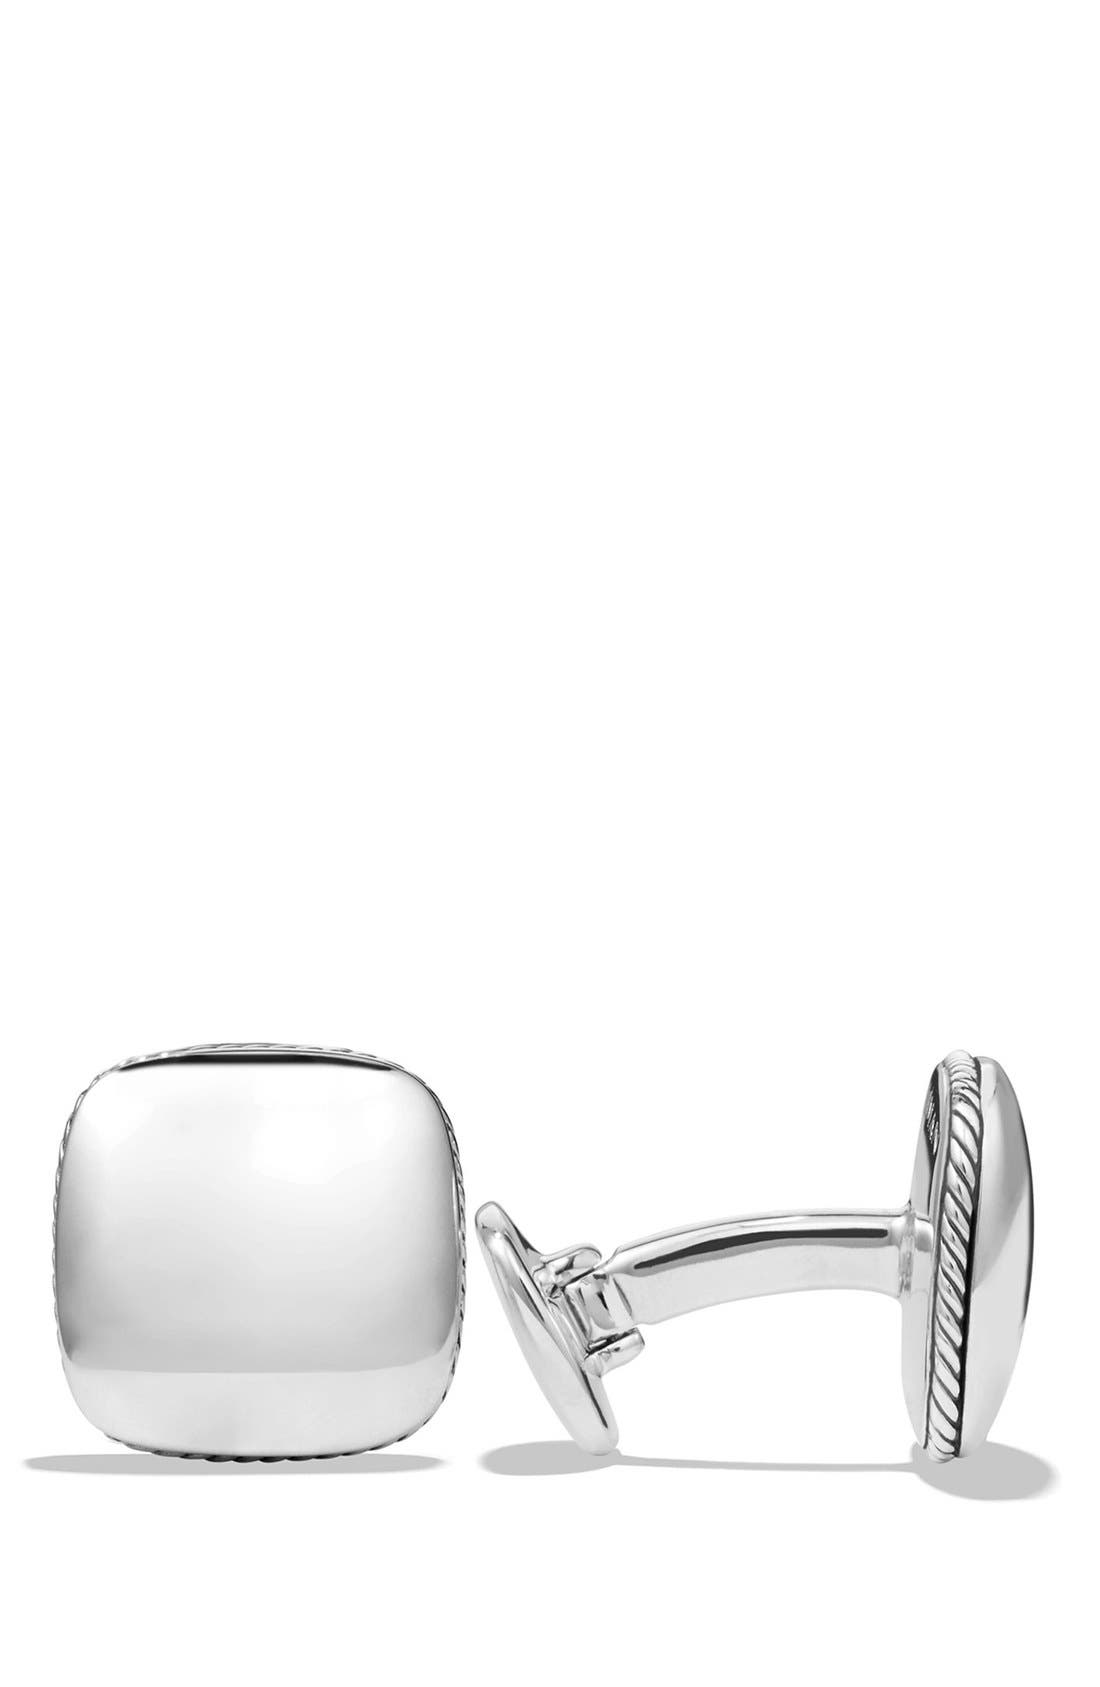 DAVID YURMAN Streamline Cuff links